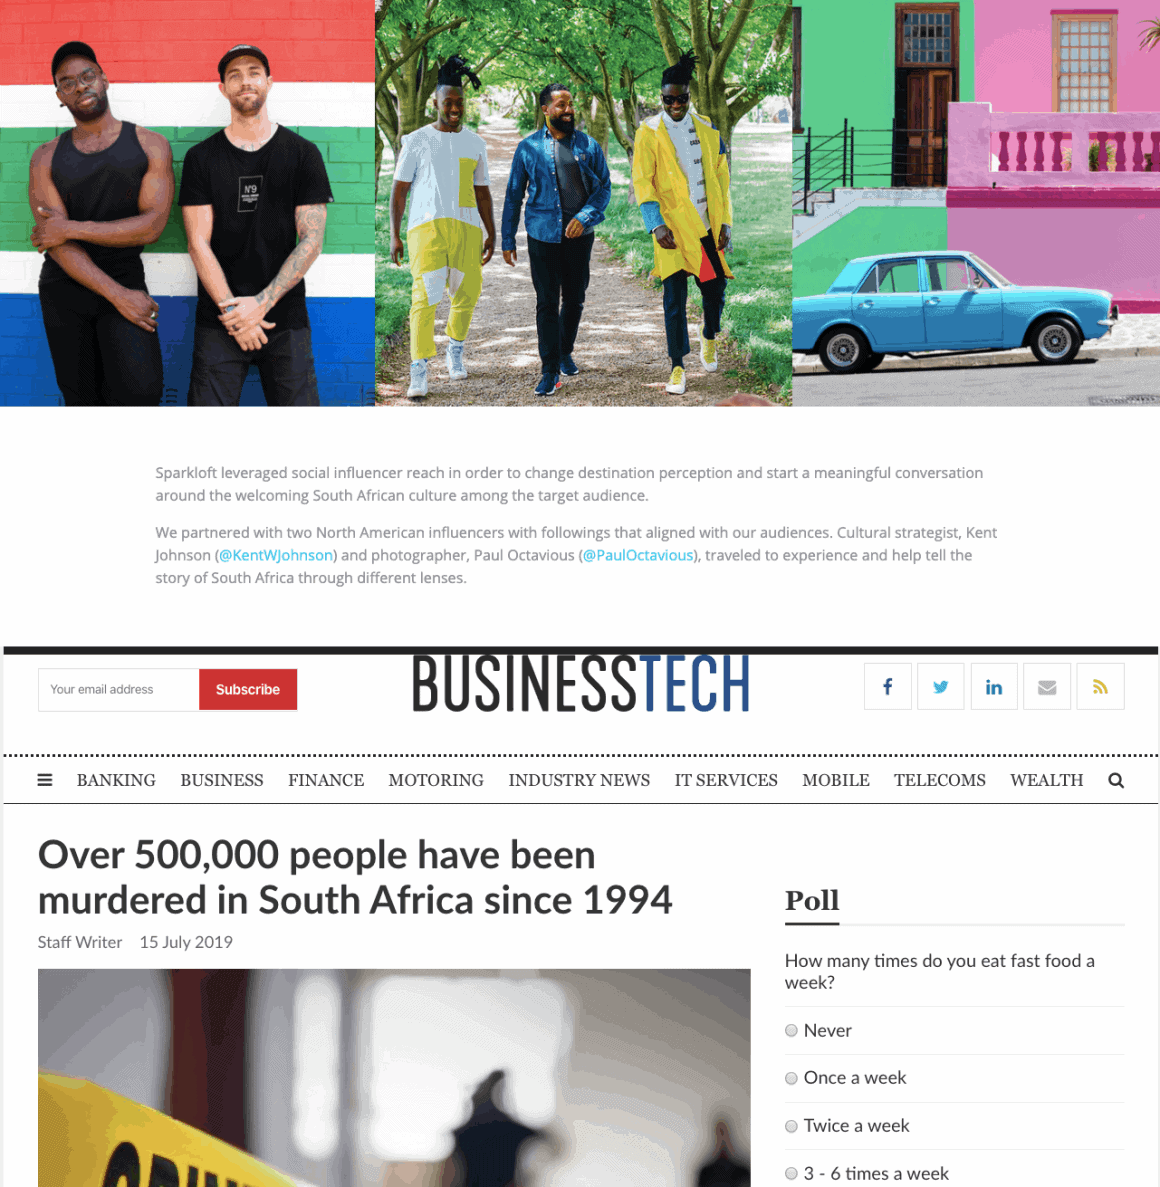 Influencer marketing to promote South Africa